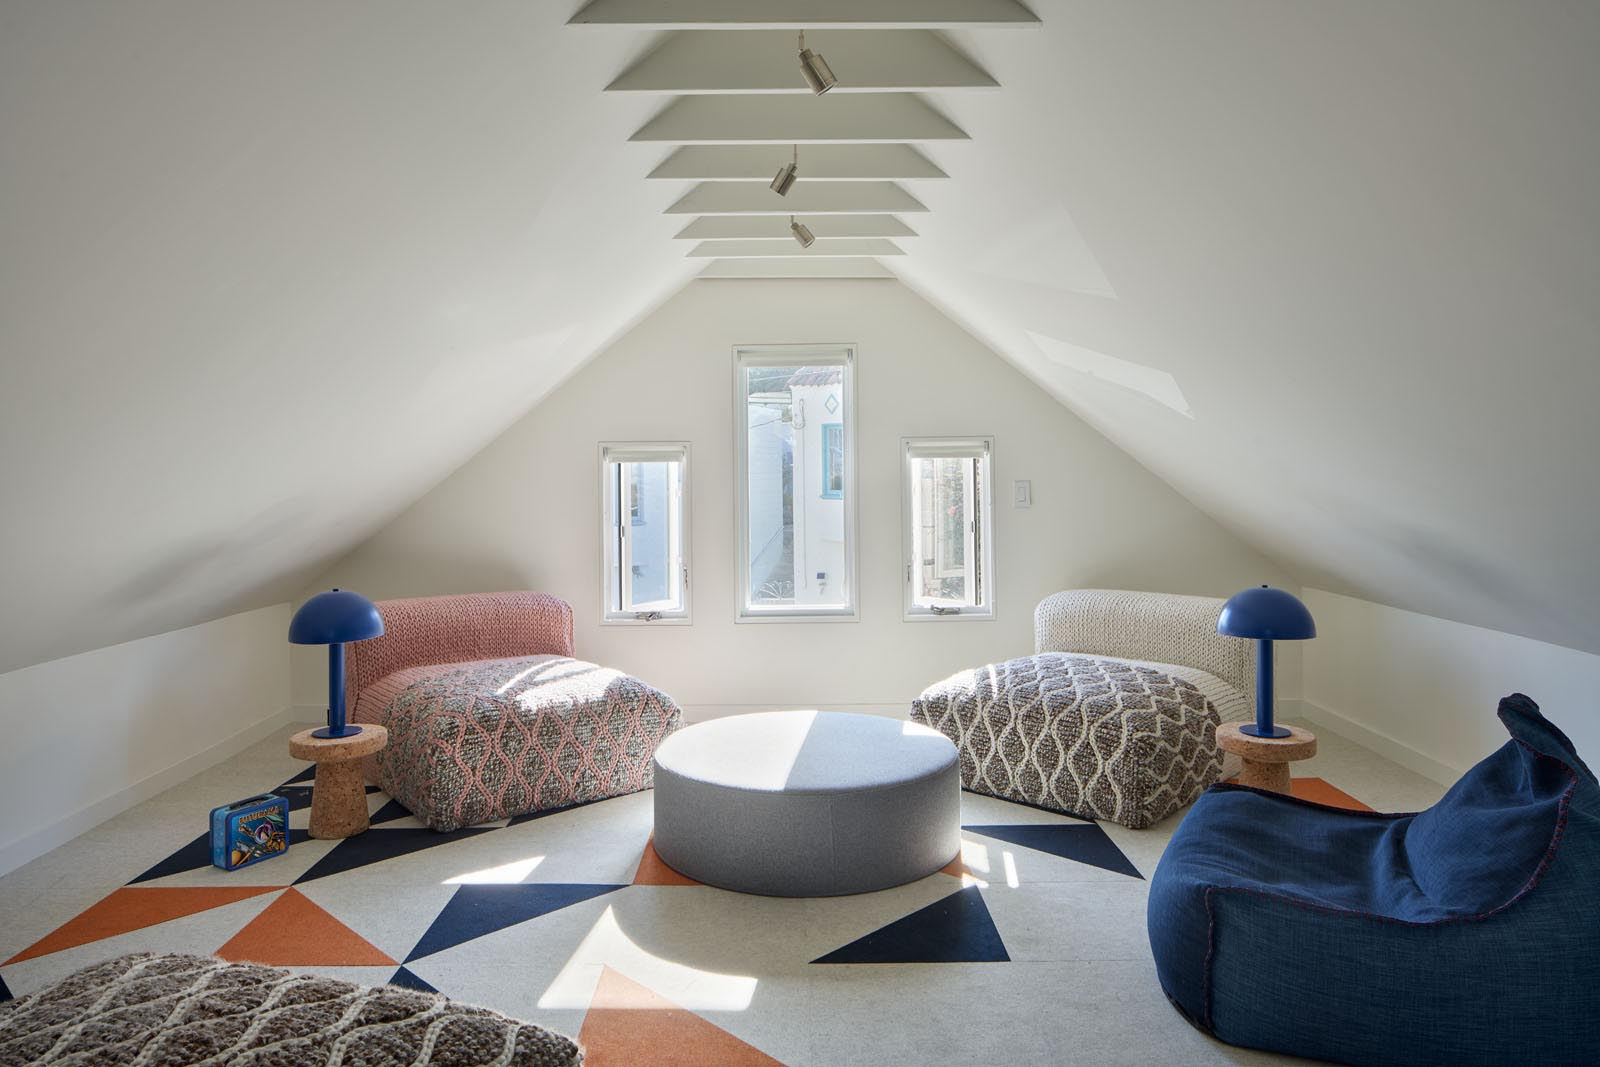 A modern attic that's been furnished with comfortable low chairs, a pair of lights, a rug, and an upholstered round ottoman.